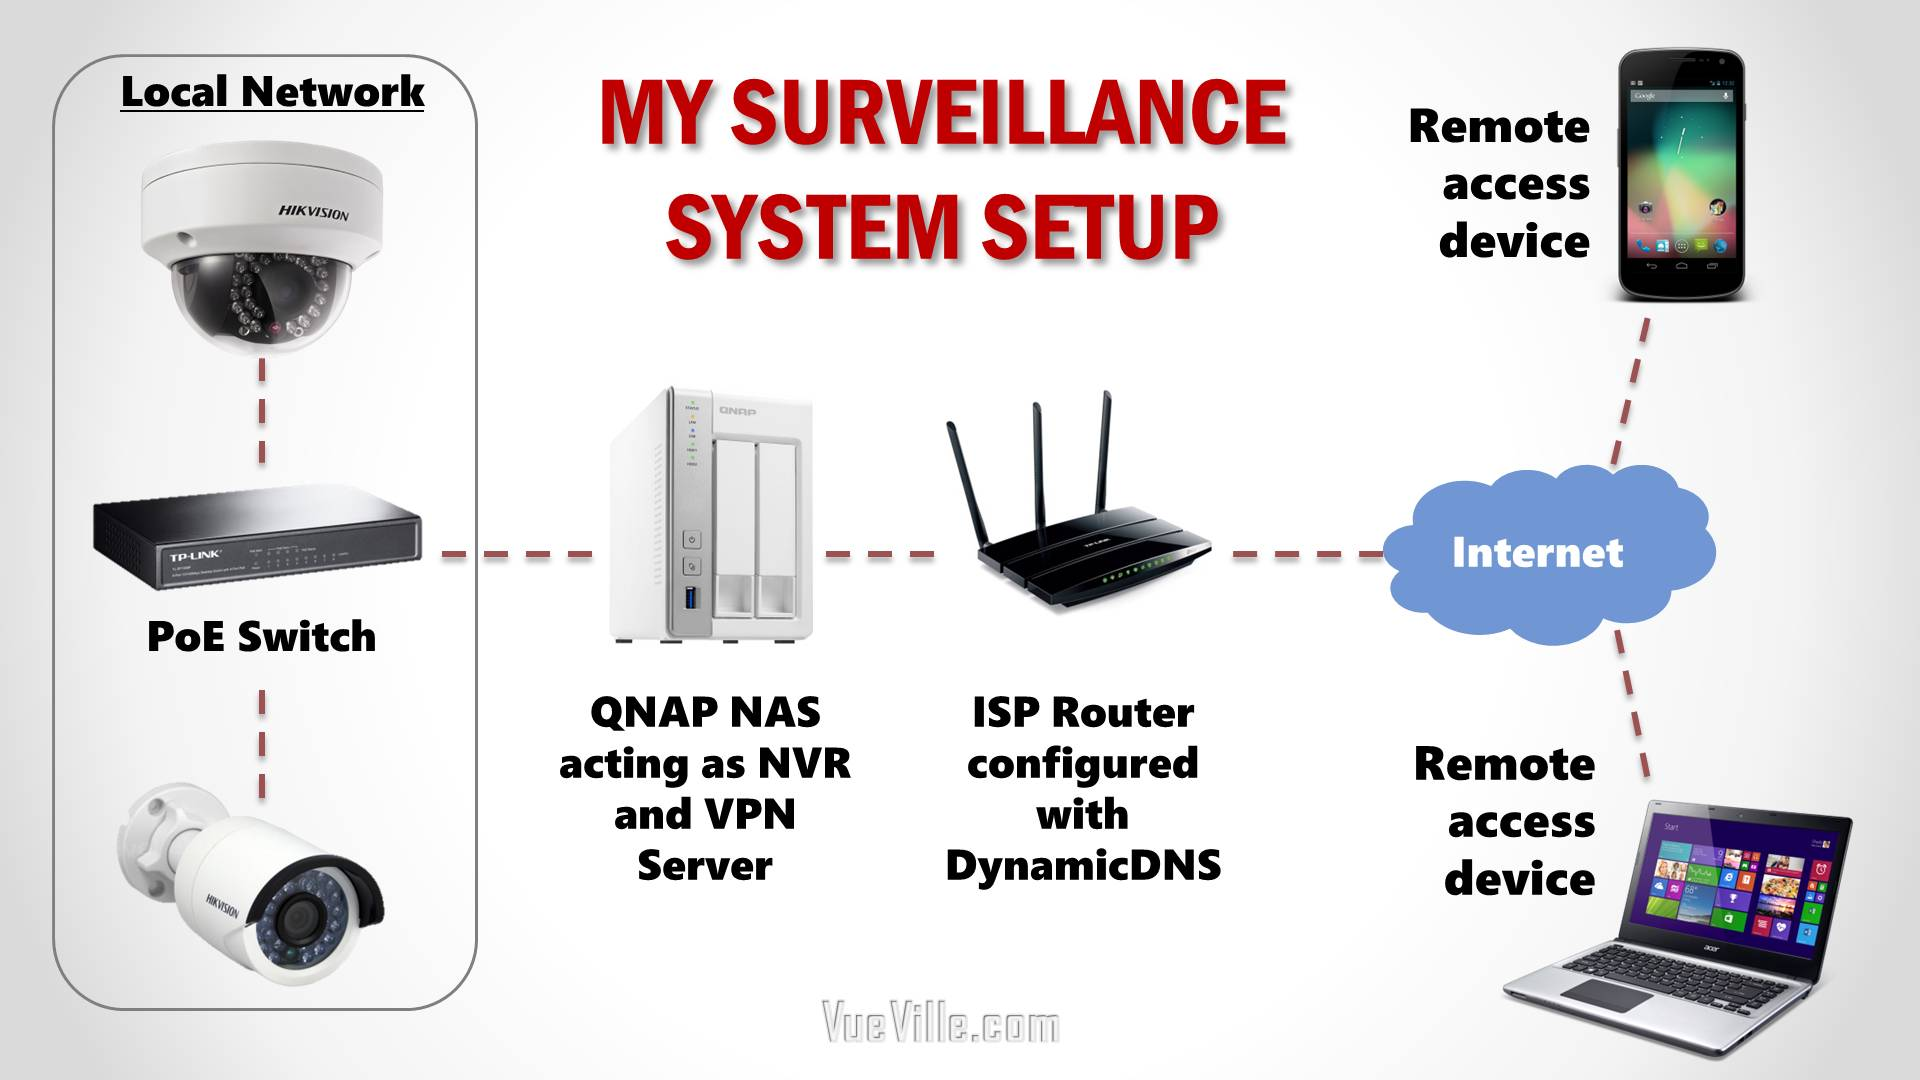 Charmant DIY Home Security System Network Topology Logical VueVille.com